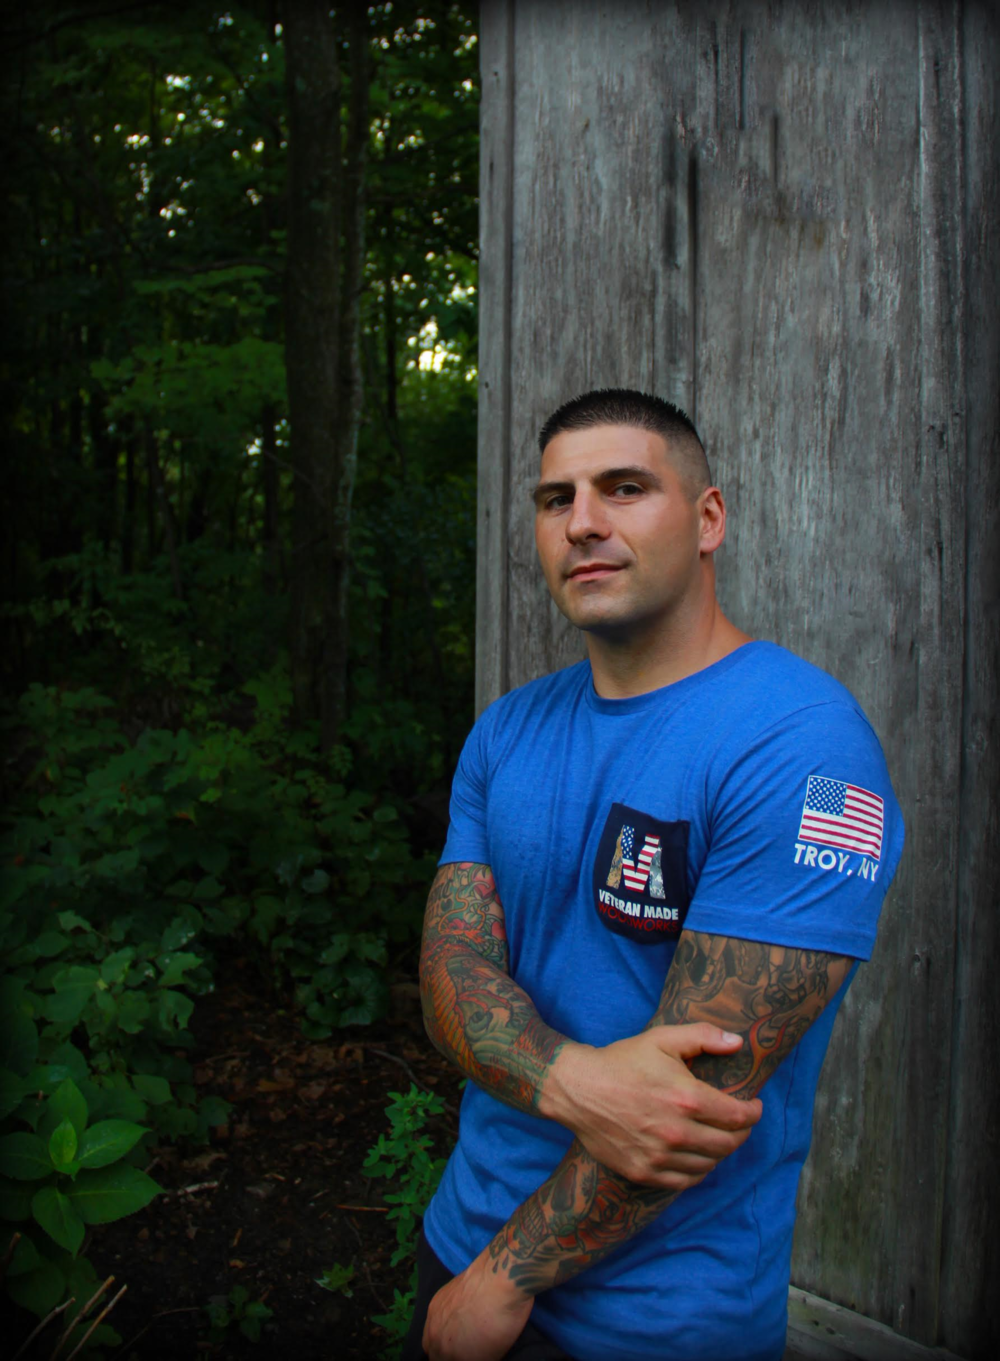 "Anthony Guadagnino  - Owner and Lead Carpenter  United States Marine Corps OIF Veteran and currently serving US Army SFC  This company was all started by a Thin Blue Line (TBL) Flag I thought up and created as a thank you gift for Ryan's help on a flooring job. Every veteran understands the brotherhood. Ryan and I served together in Iraq in 2003. We have remained friends ever since ***   fun fact:   We're close now, but we used to be rivals in high school football. As you can so obviously see in my picture compared to 'ole Ryan's here, I was definitely not the ""no tackle redshirt"" quarterback type like he was! BOOM! I got the last word in, RYAN!"